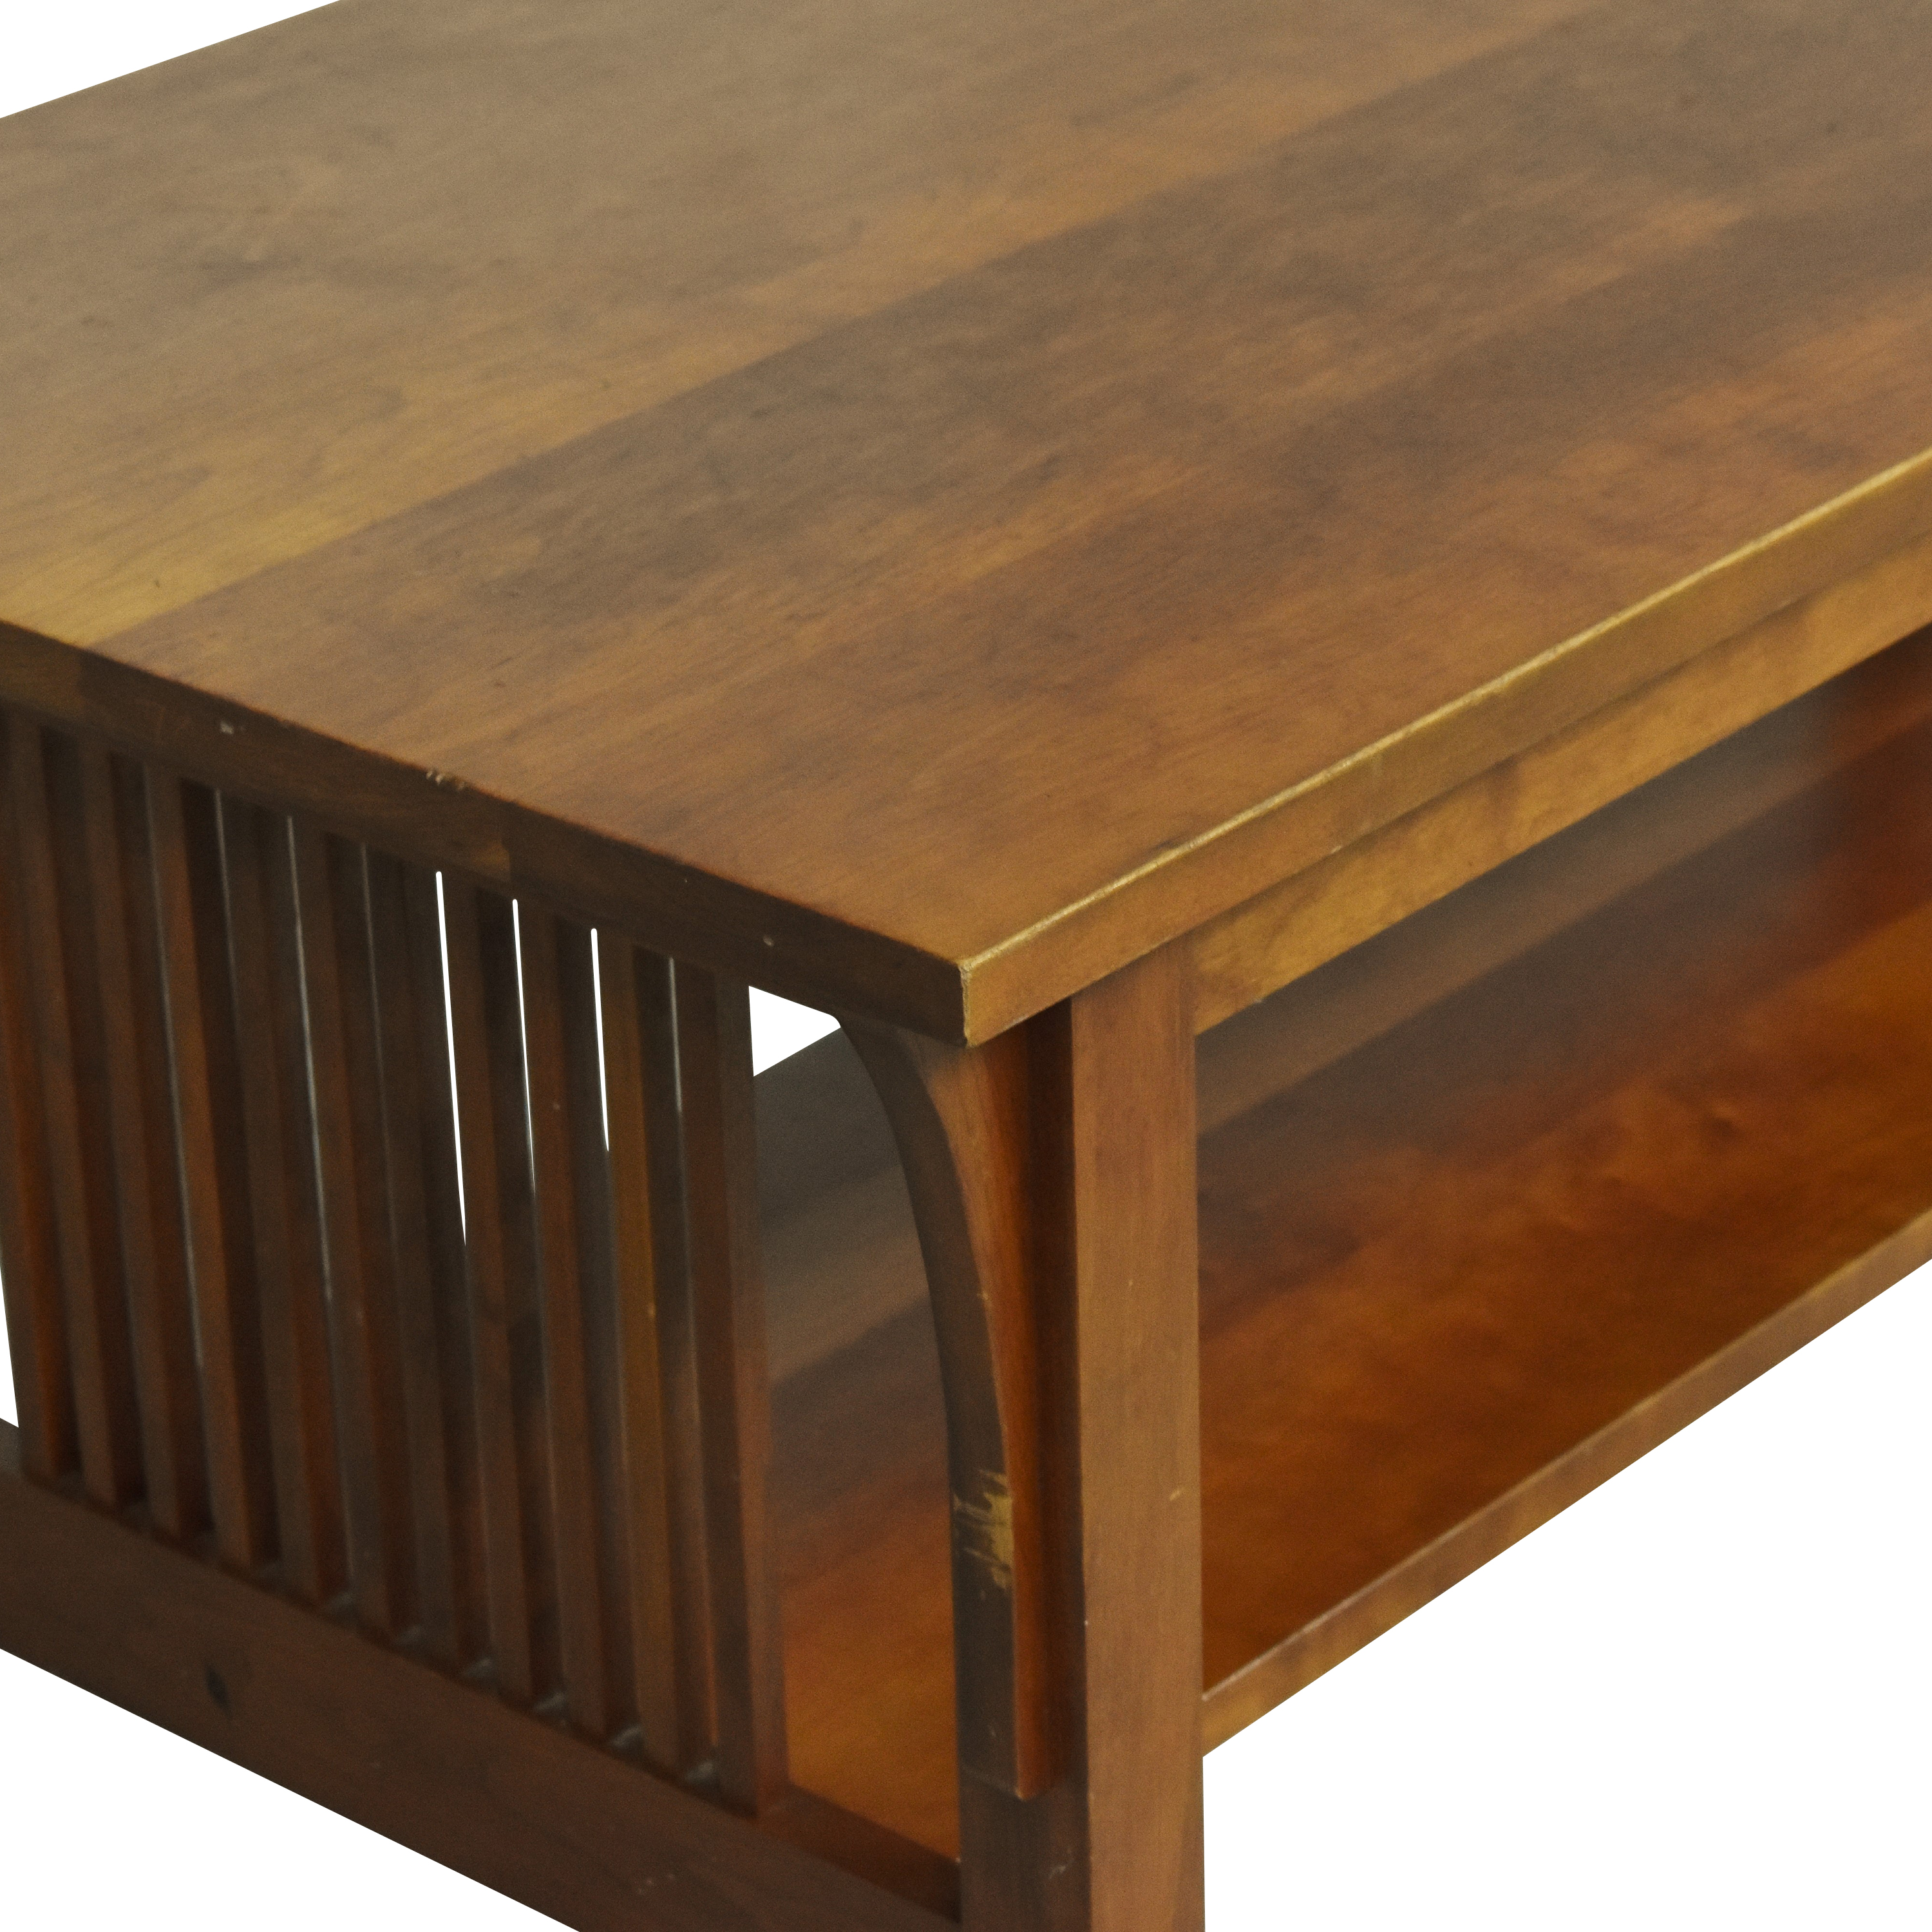 Stickley Furniture Stickley Mission Collection Cocktail Table nj